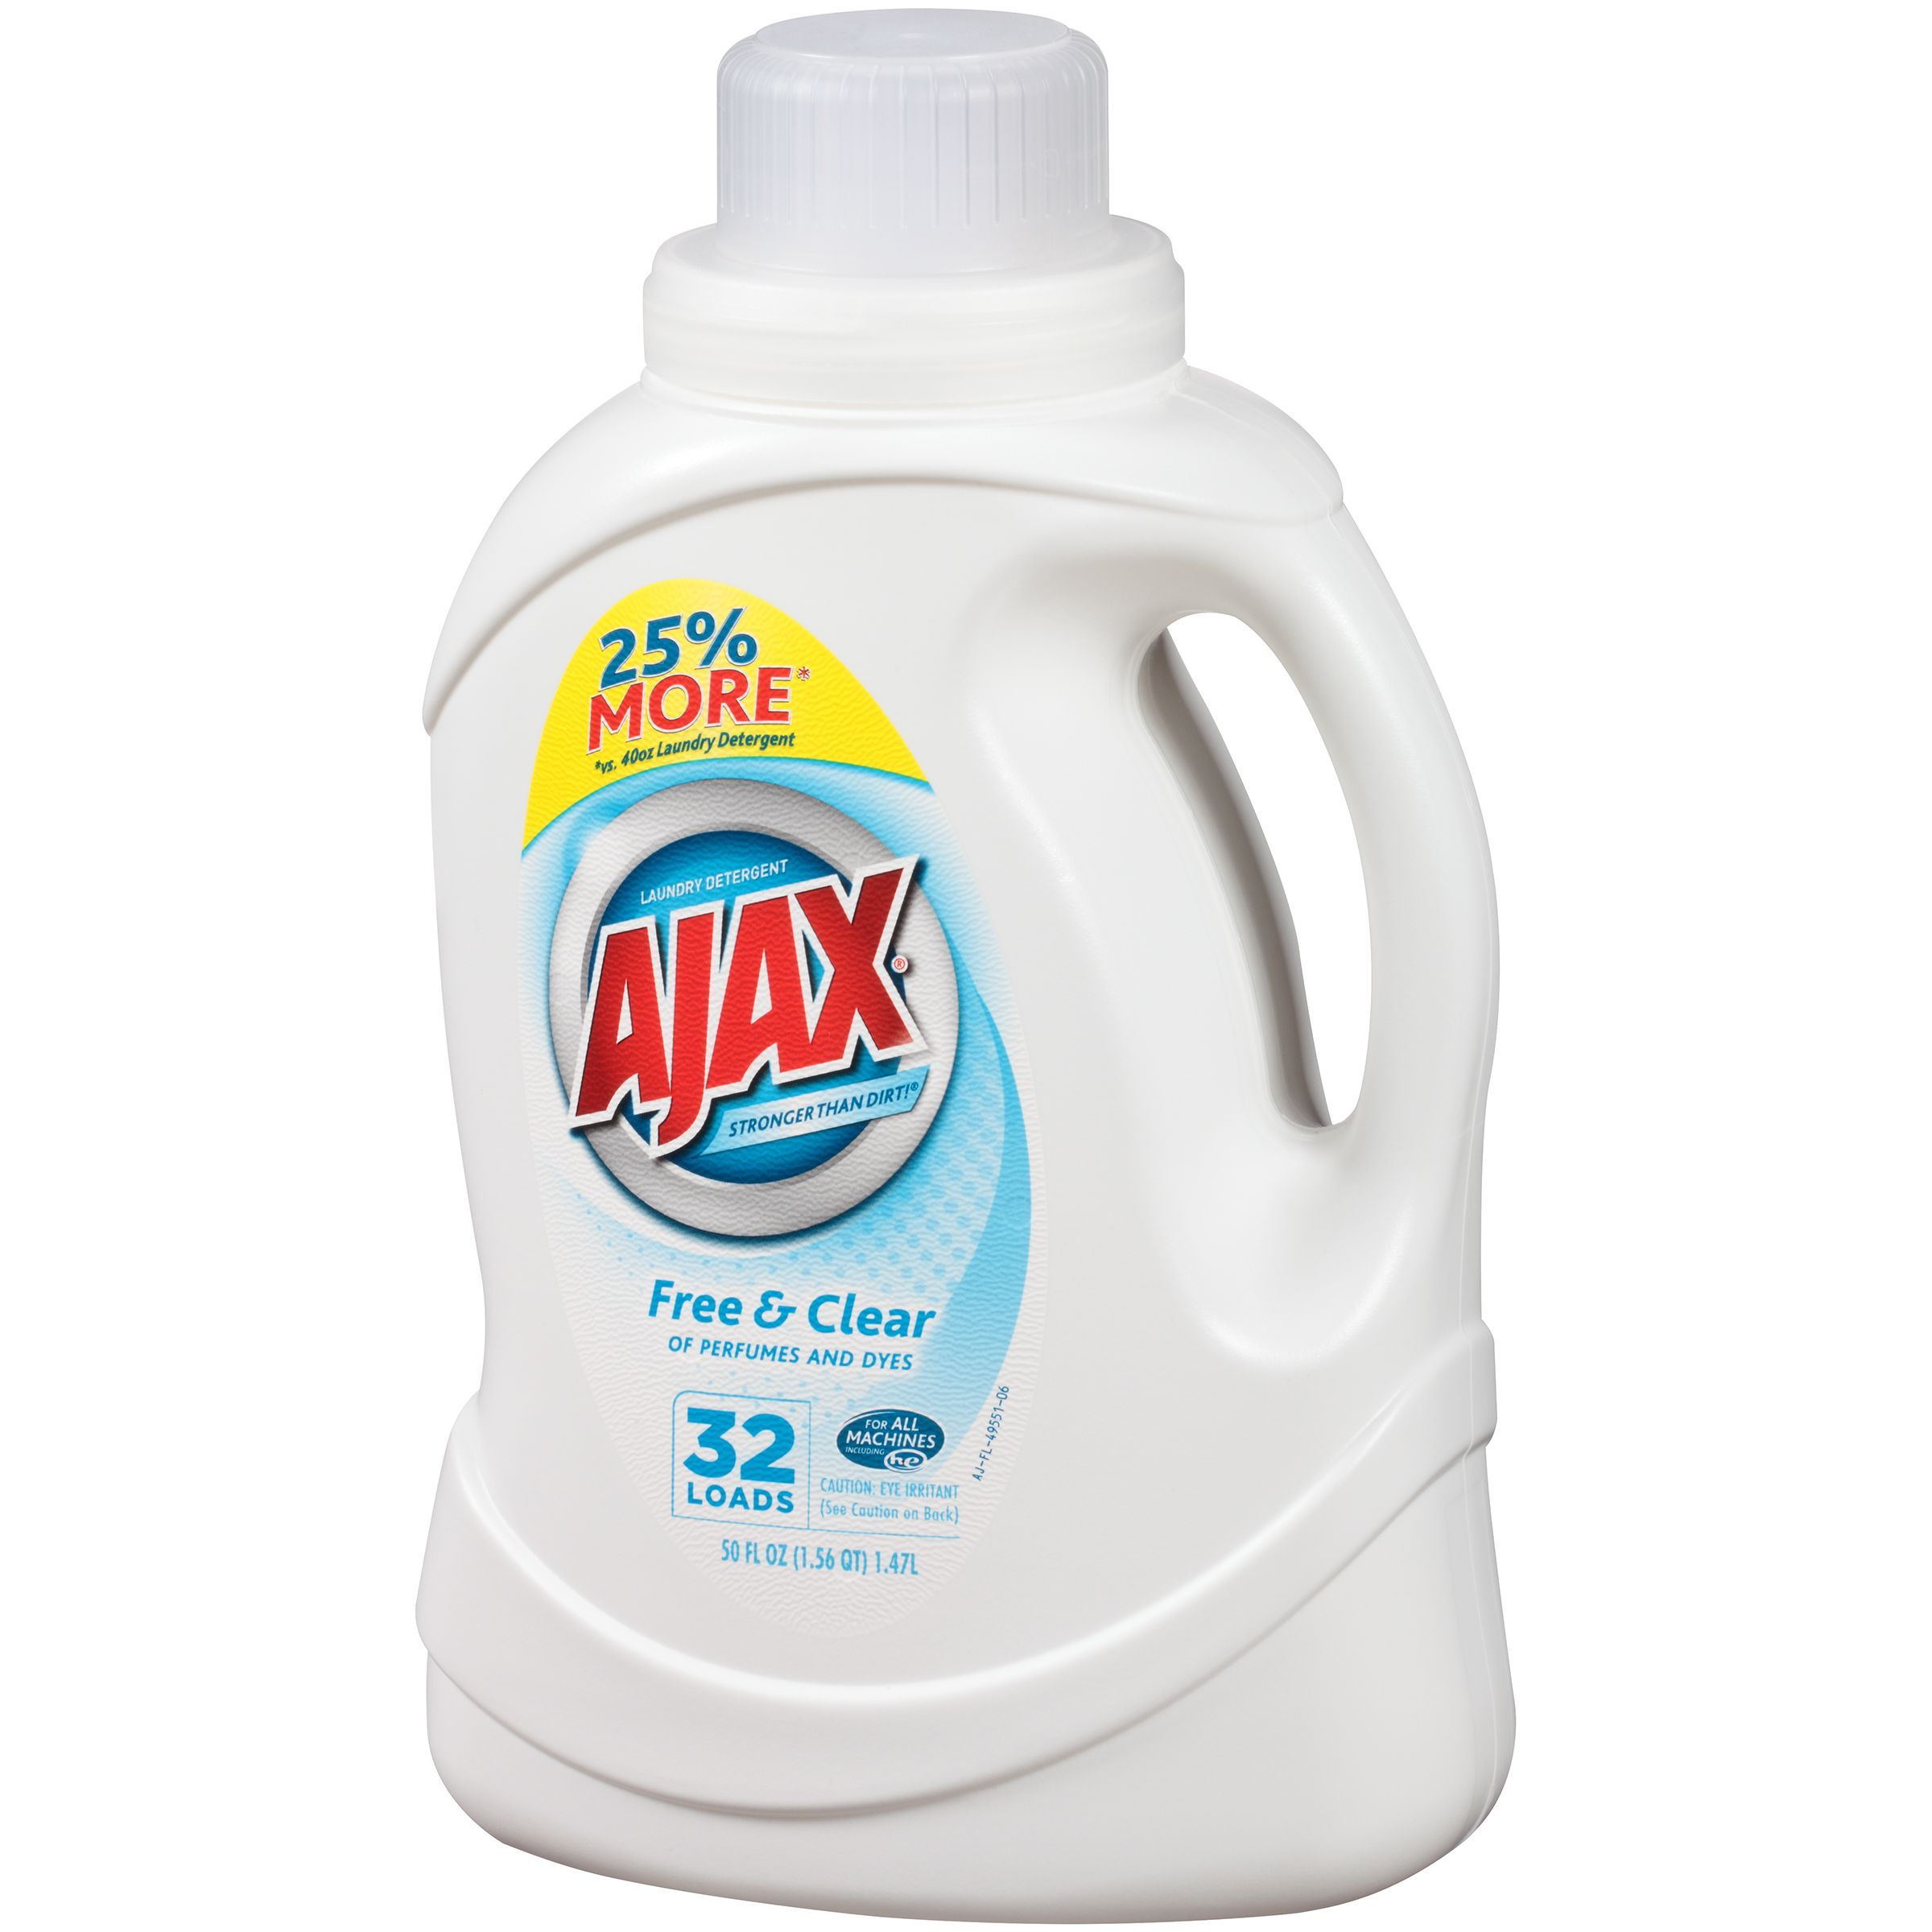 Ajax Free Clear Laundry Detergent Ajax Laundry Detergent